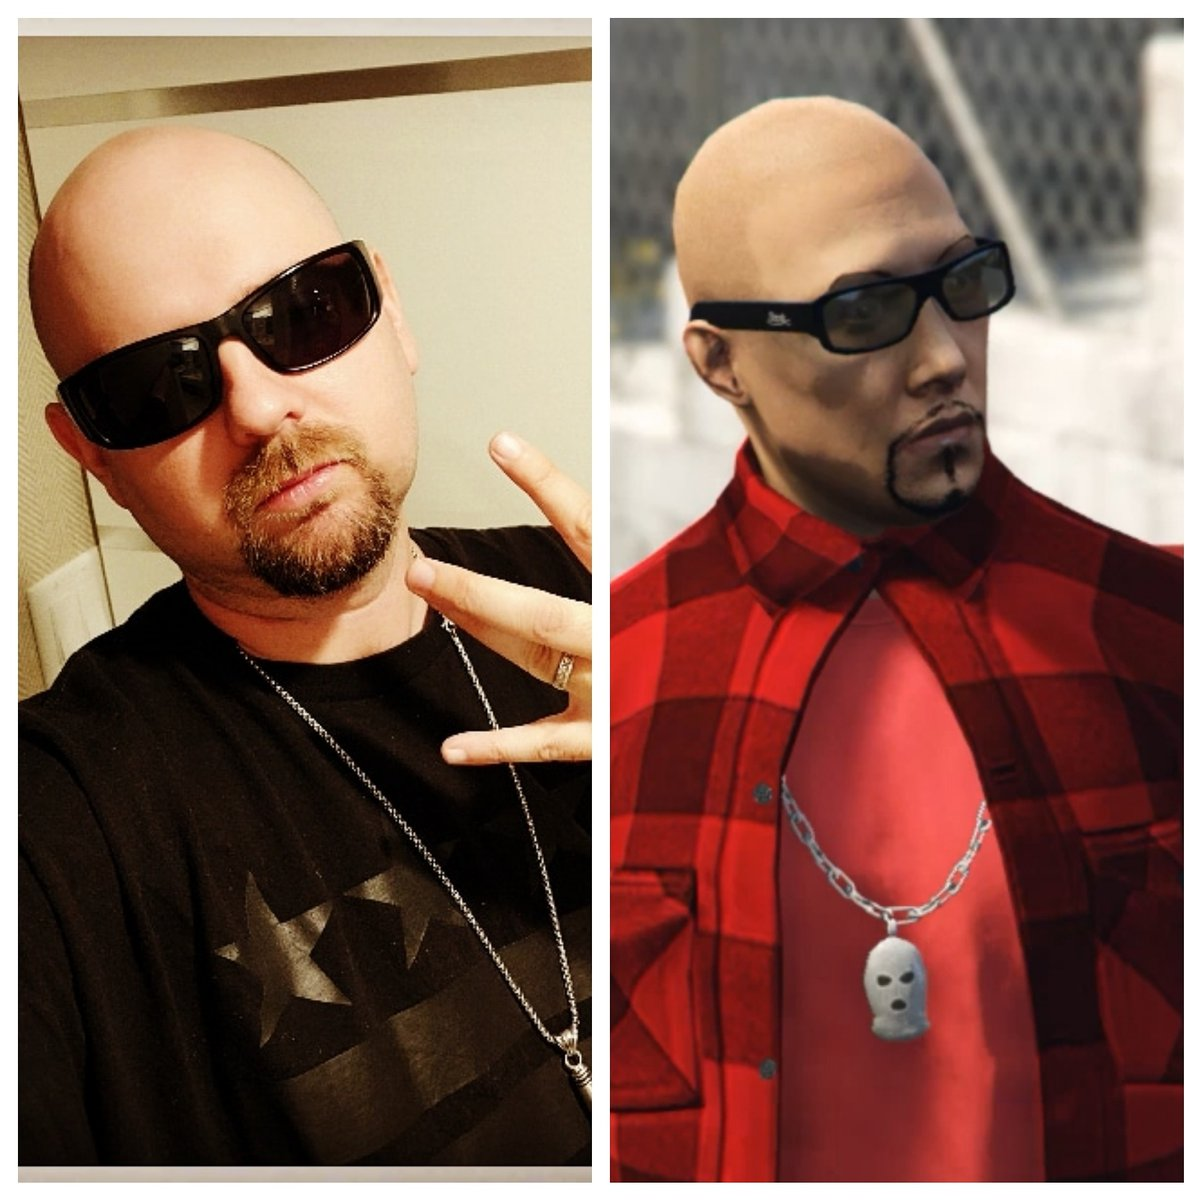 """The real @locdasmoke on the left & my #game character in the right! If you play #GTA Online on #PS4, add me, my gamer tag on #PSN is locdasmoke! Also there's a new #video for my song """"Ryde 4 Lyfe"""" so check it out, hit the like & leave a comment  https://t.co/tjGasdSJ2T   Thanks! https://t.co/ece7Hf6RKH"""